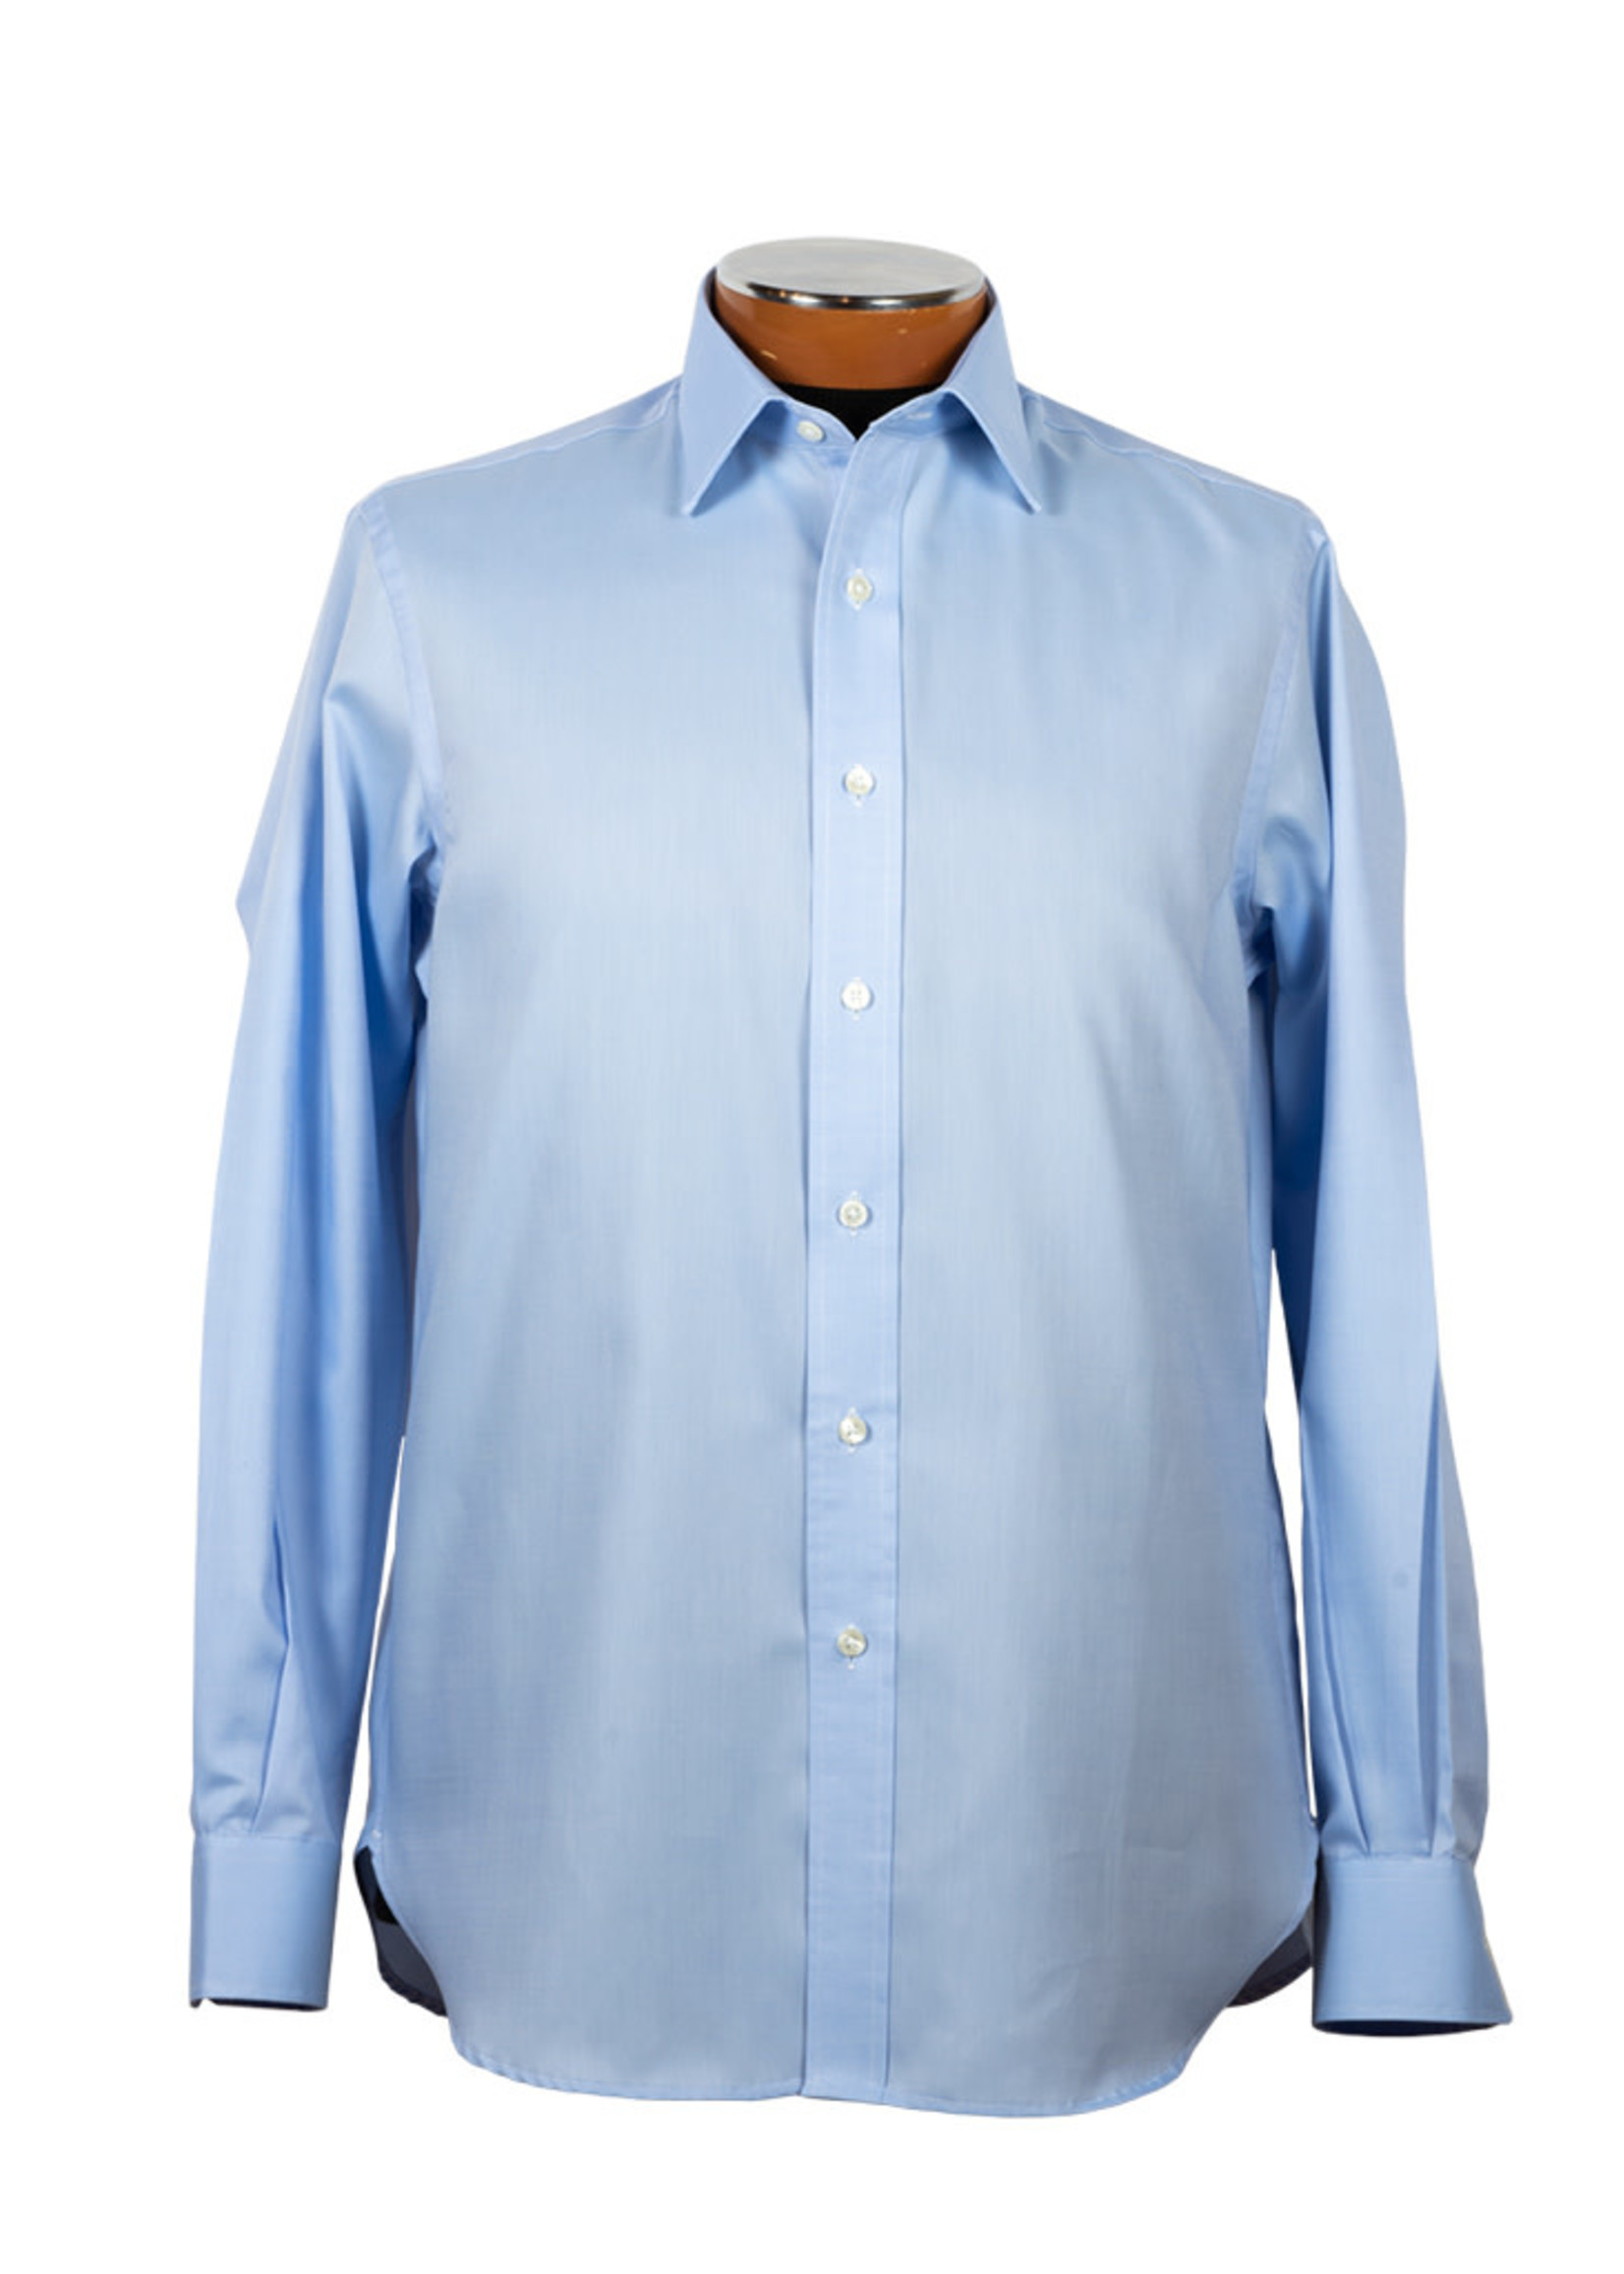 Drinkwater's Drinkwater's Blue Queen's Oxford Spread Collar Dress Shirt